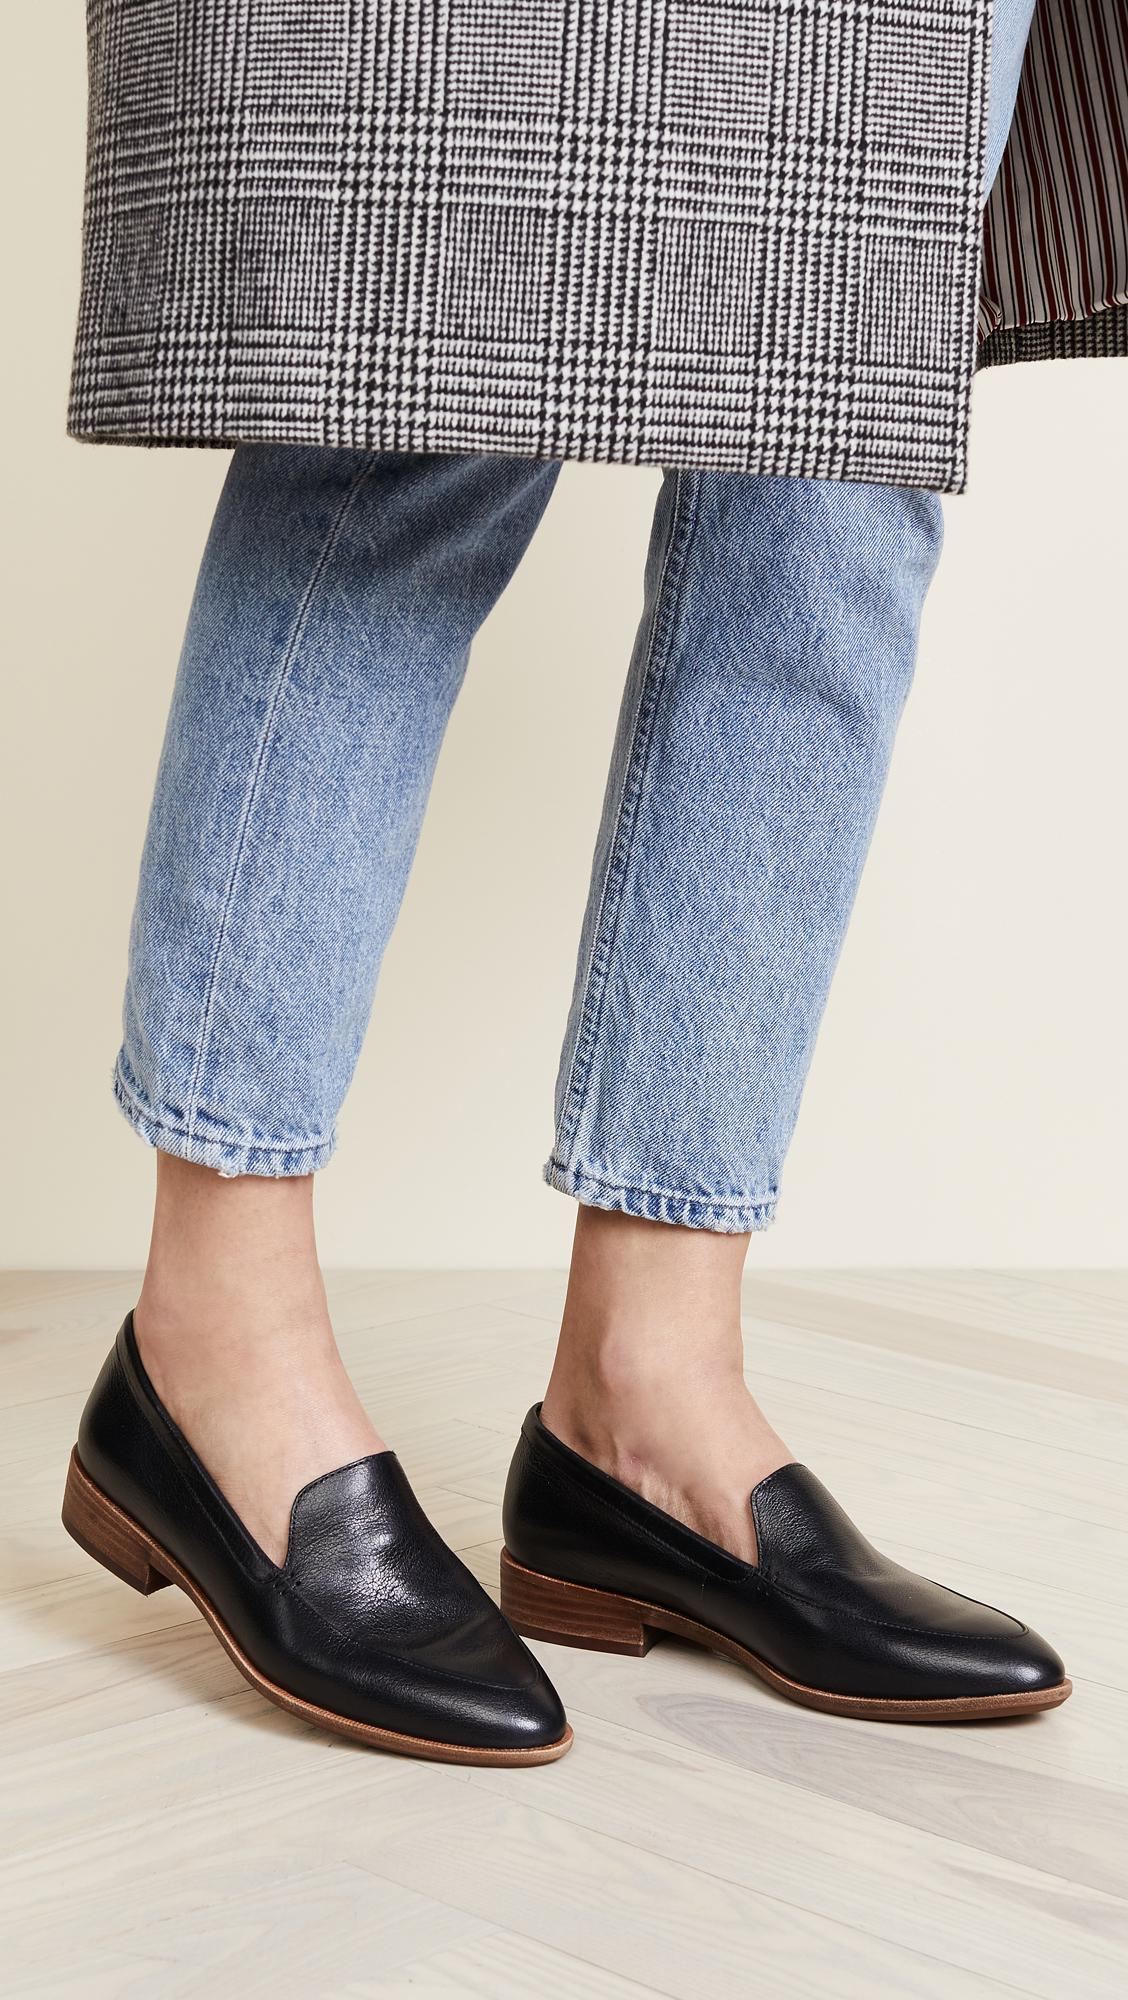 77614bdee6c Lyst - Madewell Perin Loafers in Black